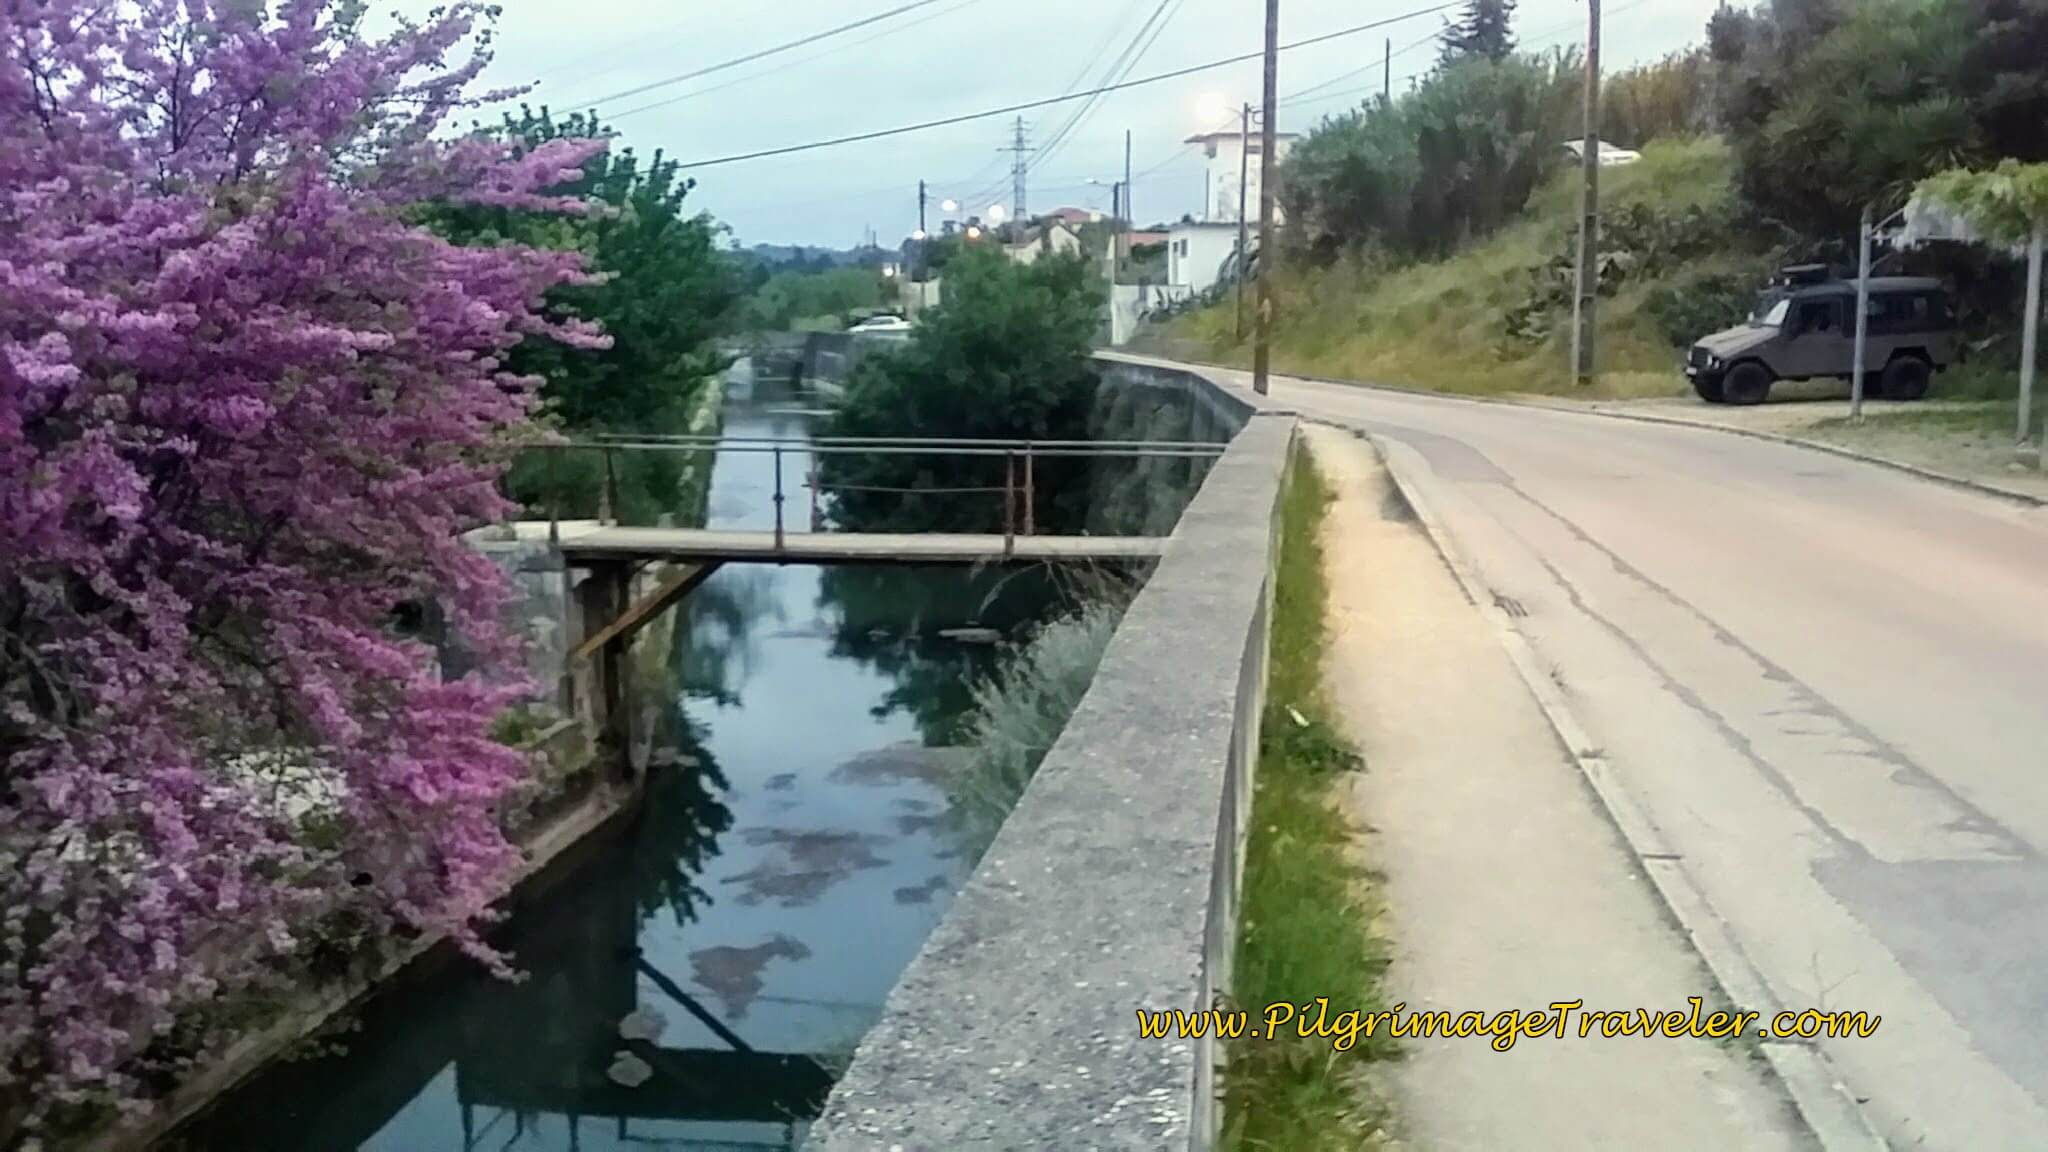 Following the Canal on the Rua Ponte da Vala on the Portuguese Way